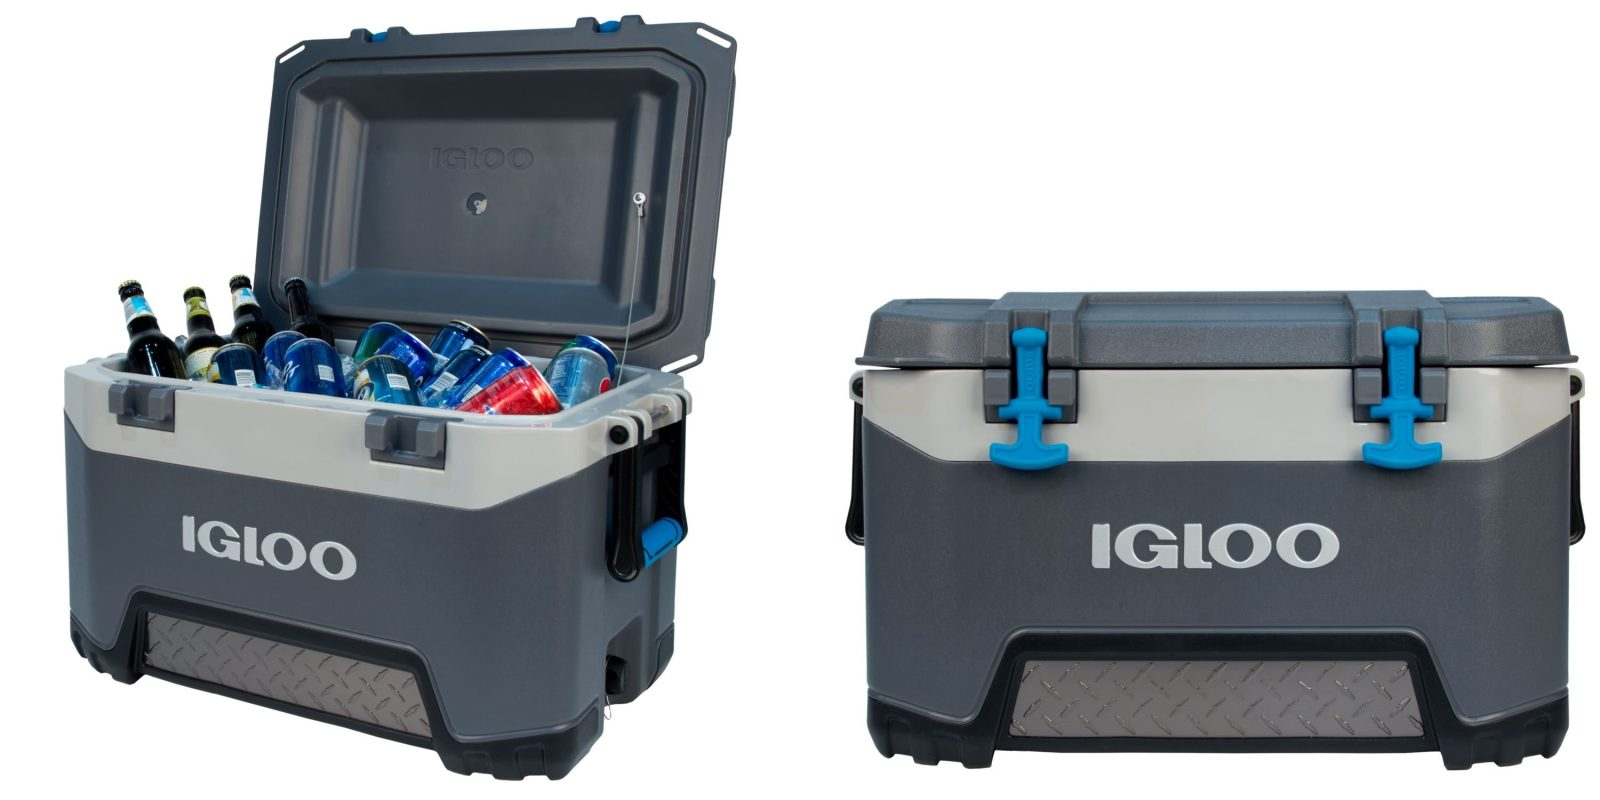 The Igloo BMX 52-quart Cooler retains ice for up to 5 days: $80 (Save 20%)